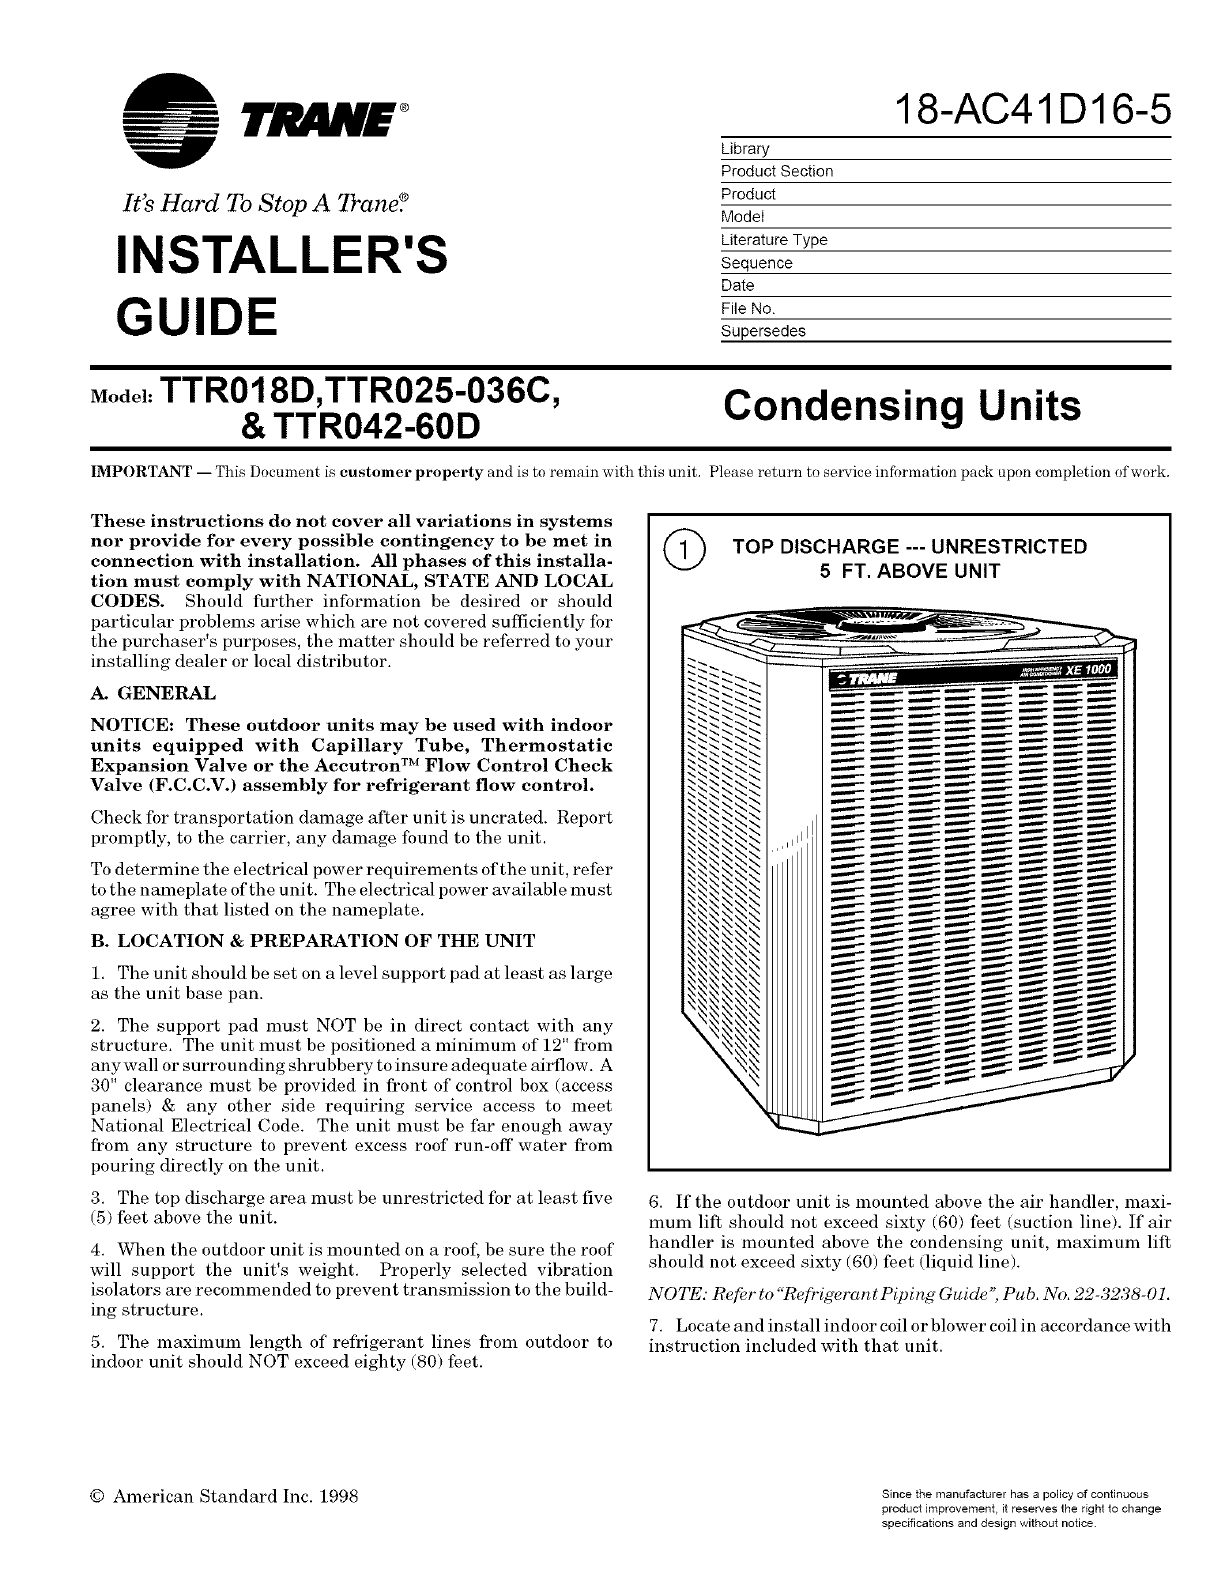 Trane Air Conditioner Wiring Diagram from usermanual.wiki